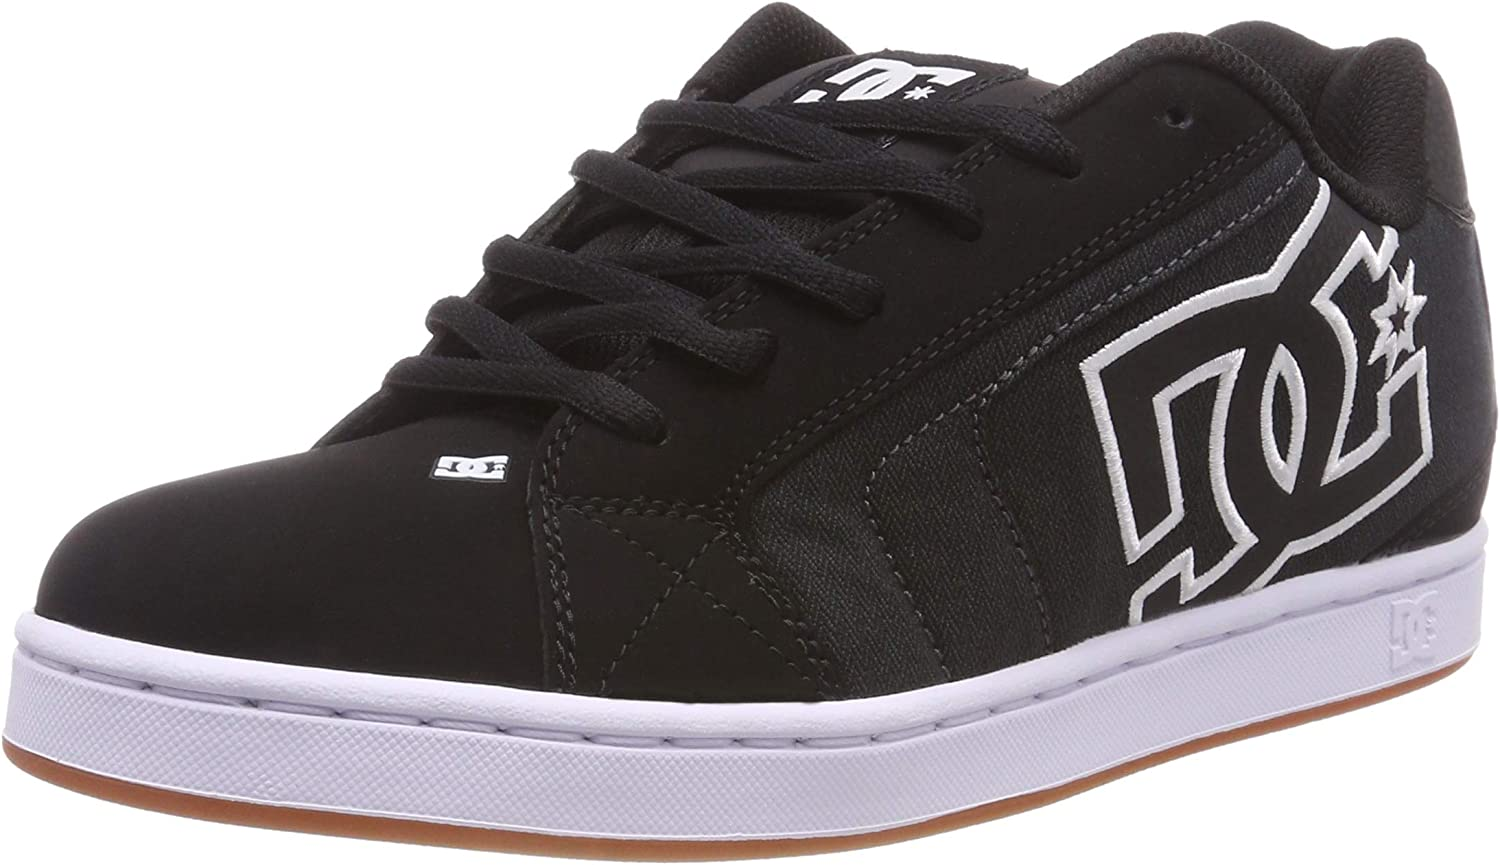 DC shoes Mens NET SE Nubuck Black Herringbone Trainers 10.5 US